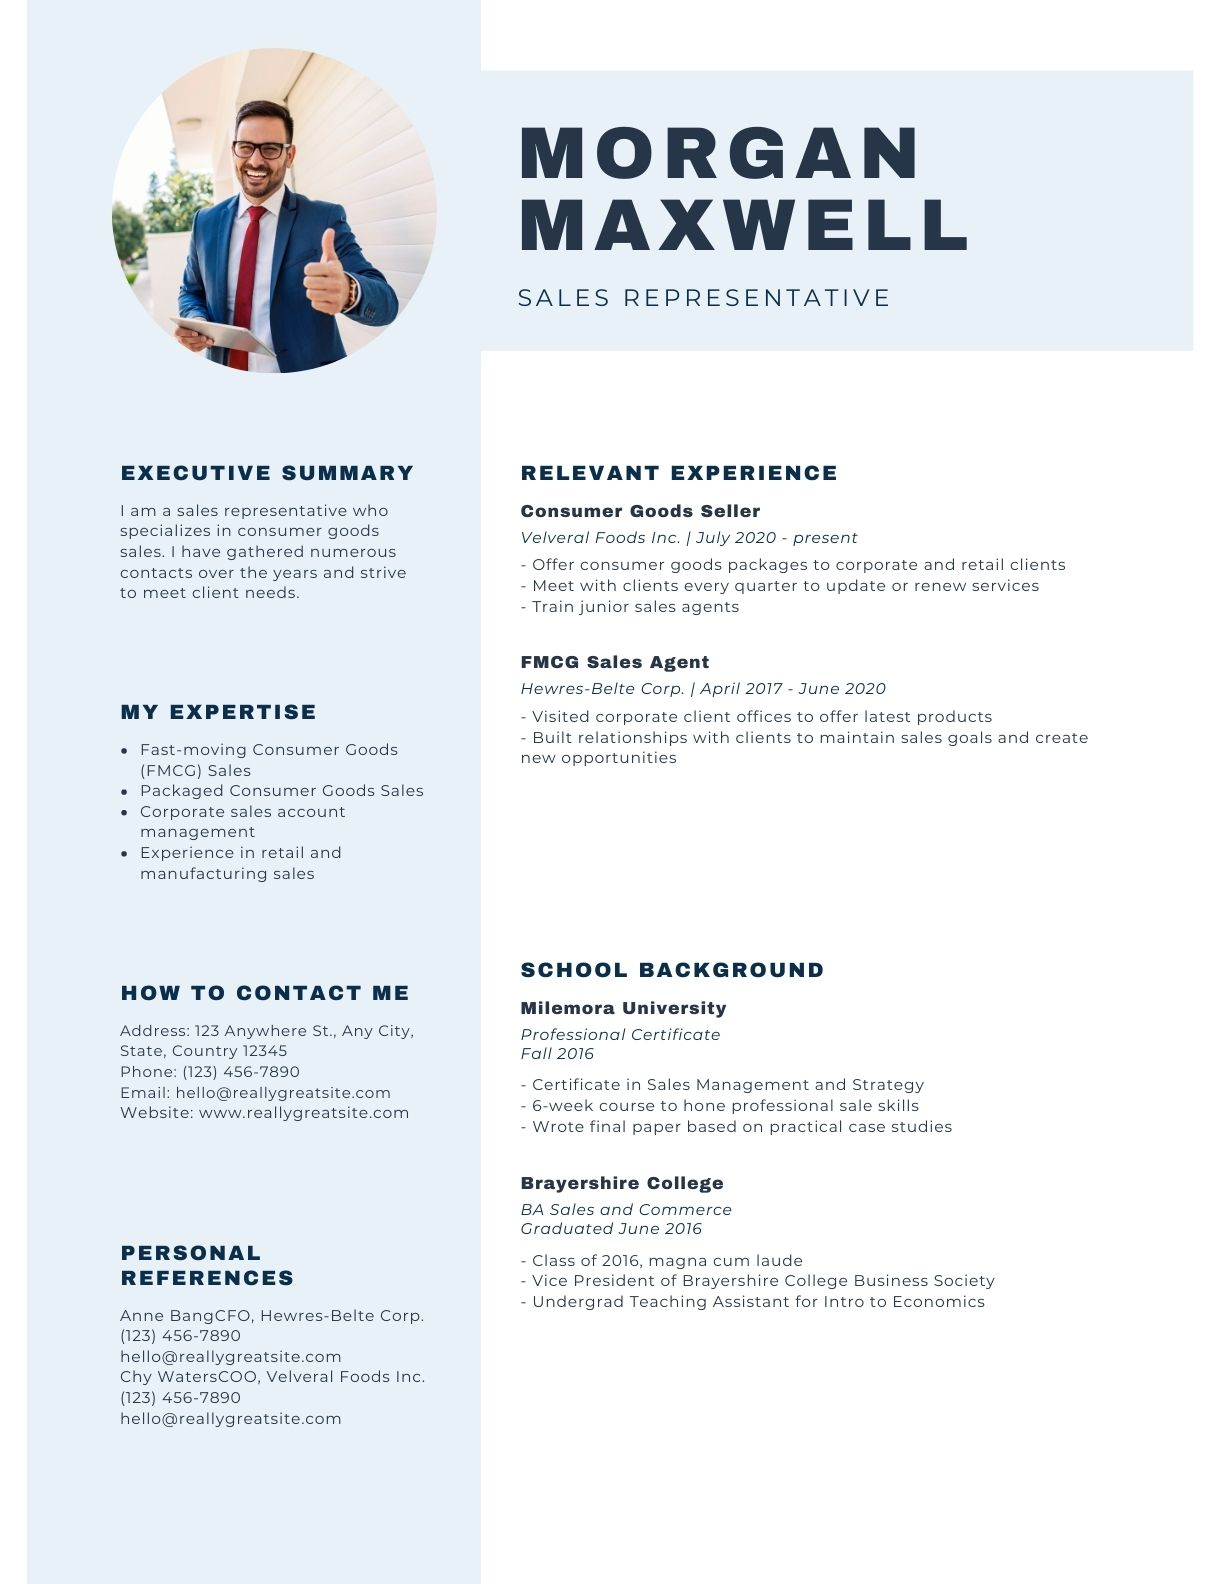 Usamaahamid I Will Do Executive Resume Writing Services For Usa Jobs Application For 10 On Fiverr Com In 2021 Resume Writing Services Writing Services Resume Template Professional